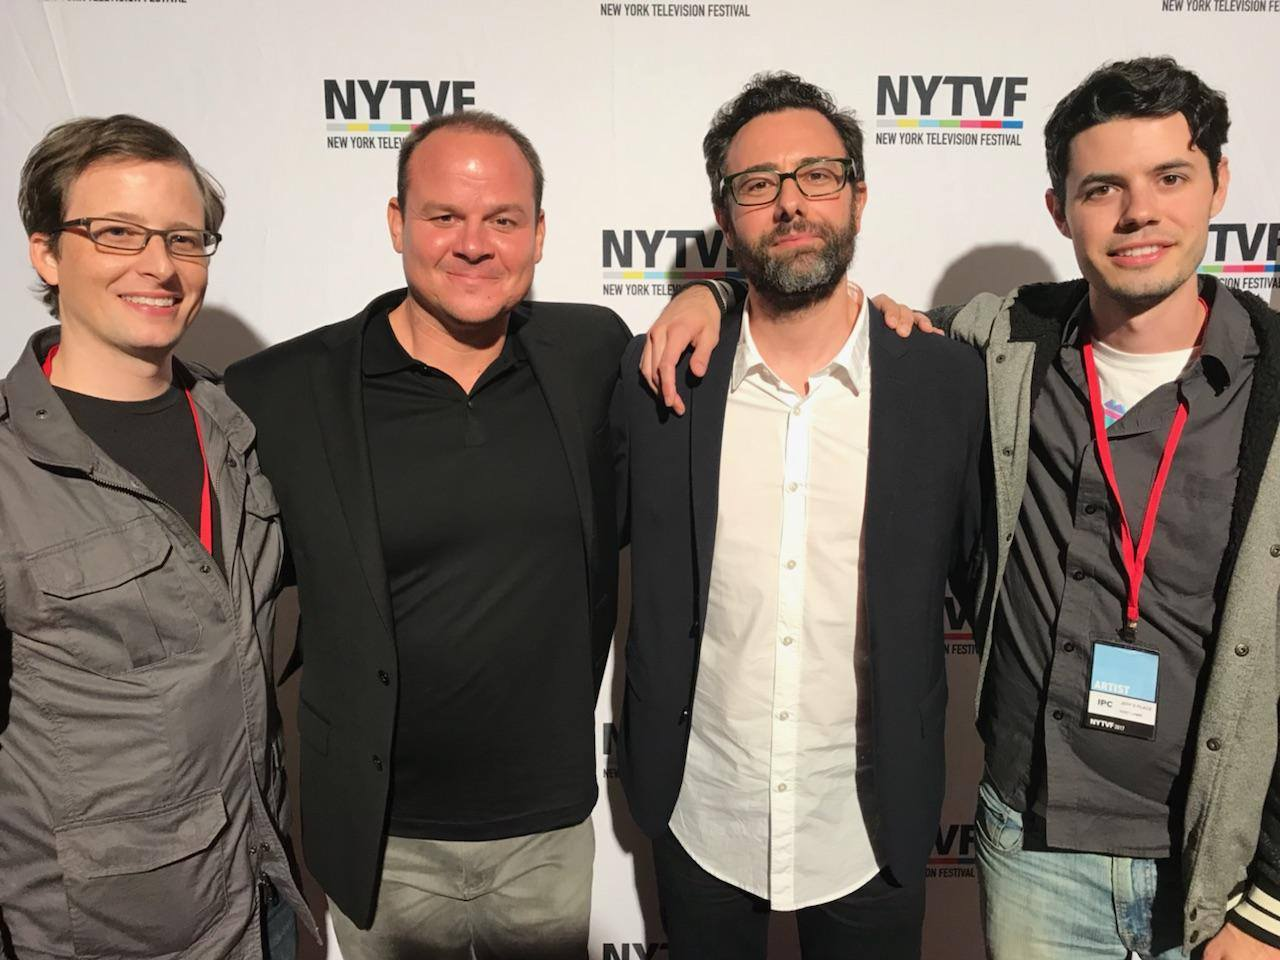 Left to Right: Andrew Fleischer, Sky Soleil, Jeff Galfer and Kent Lamm at the New York Television Festival.